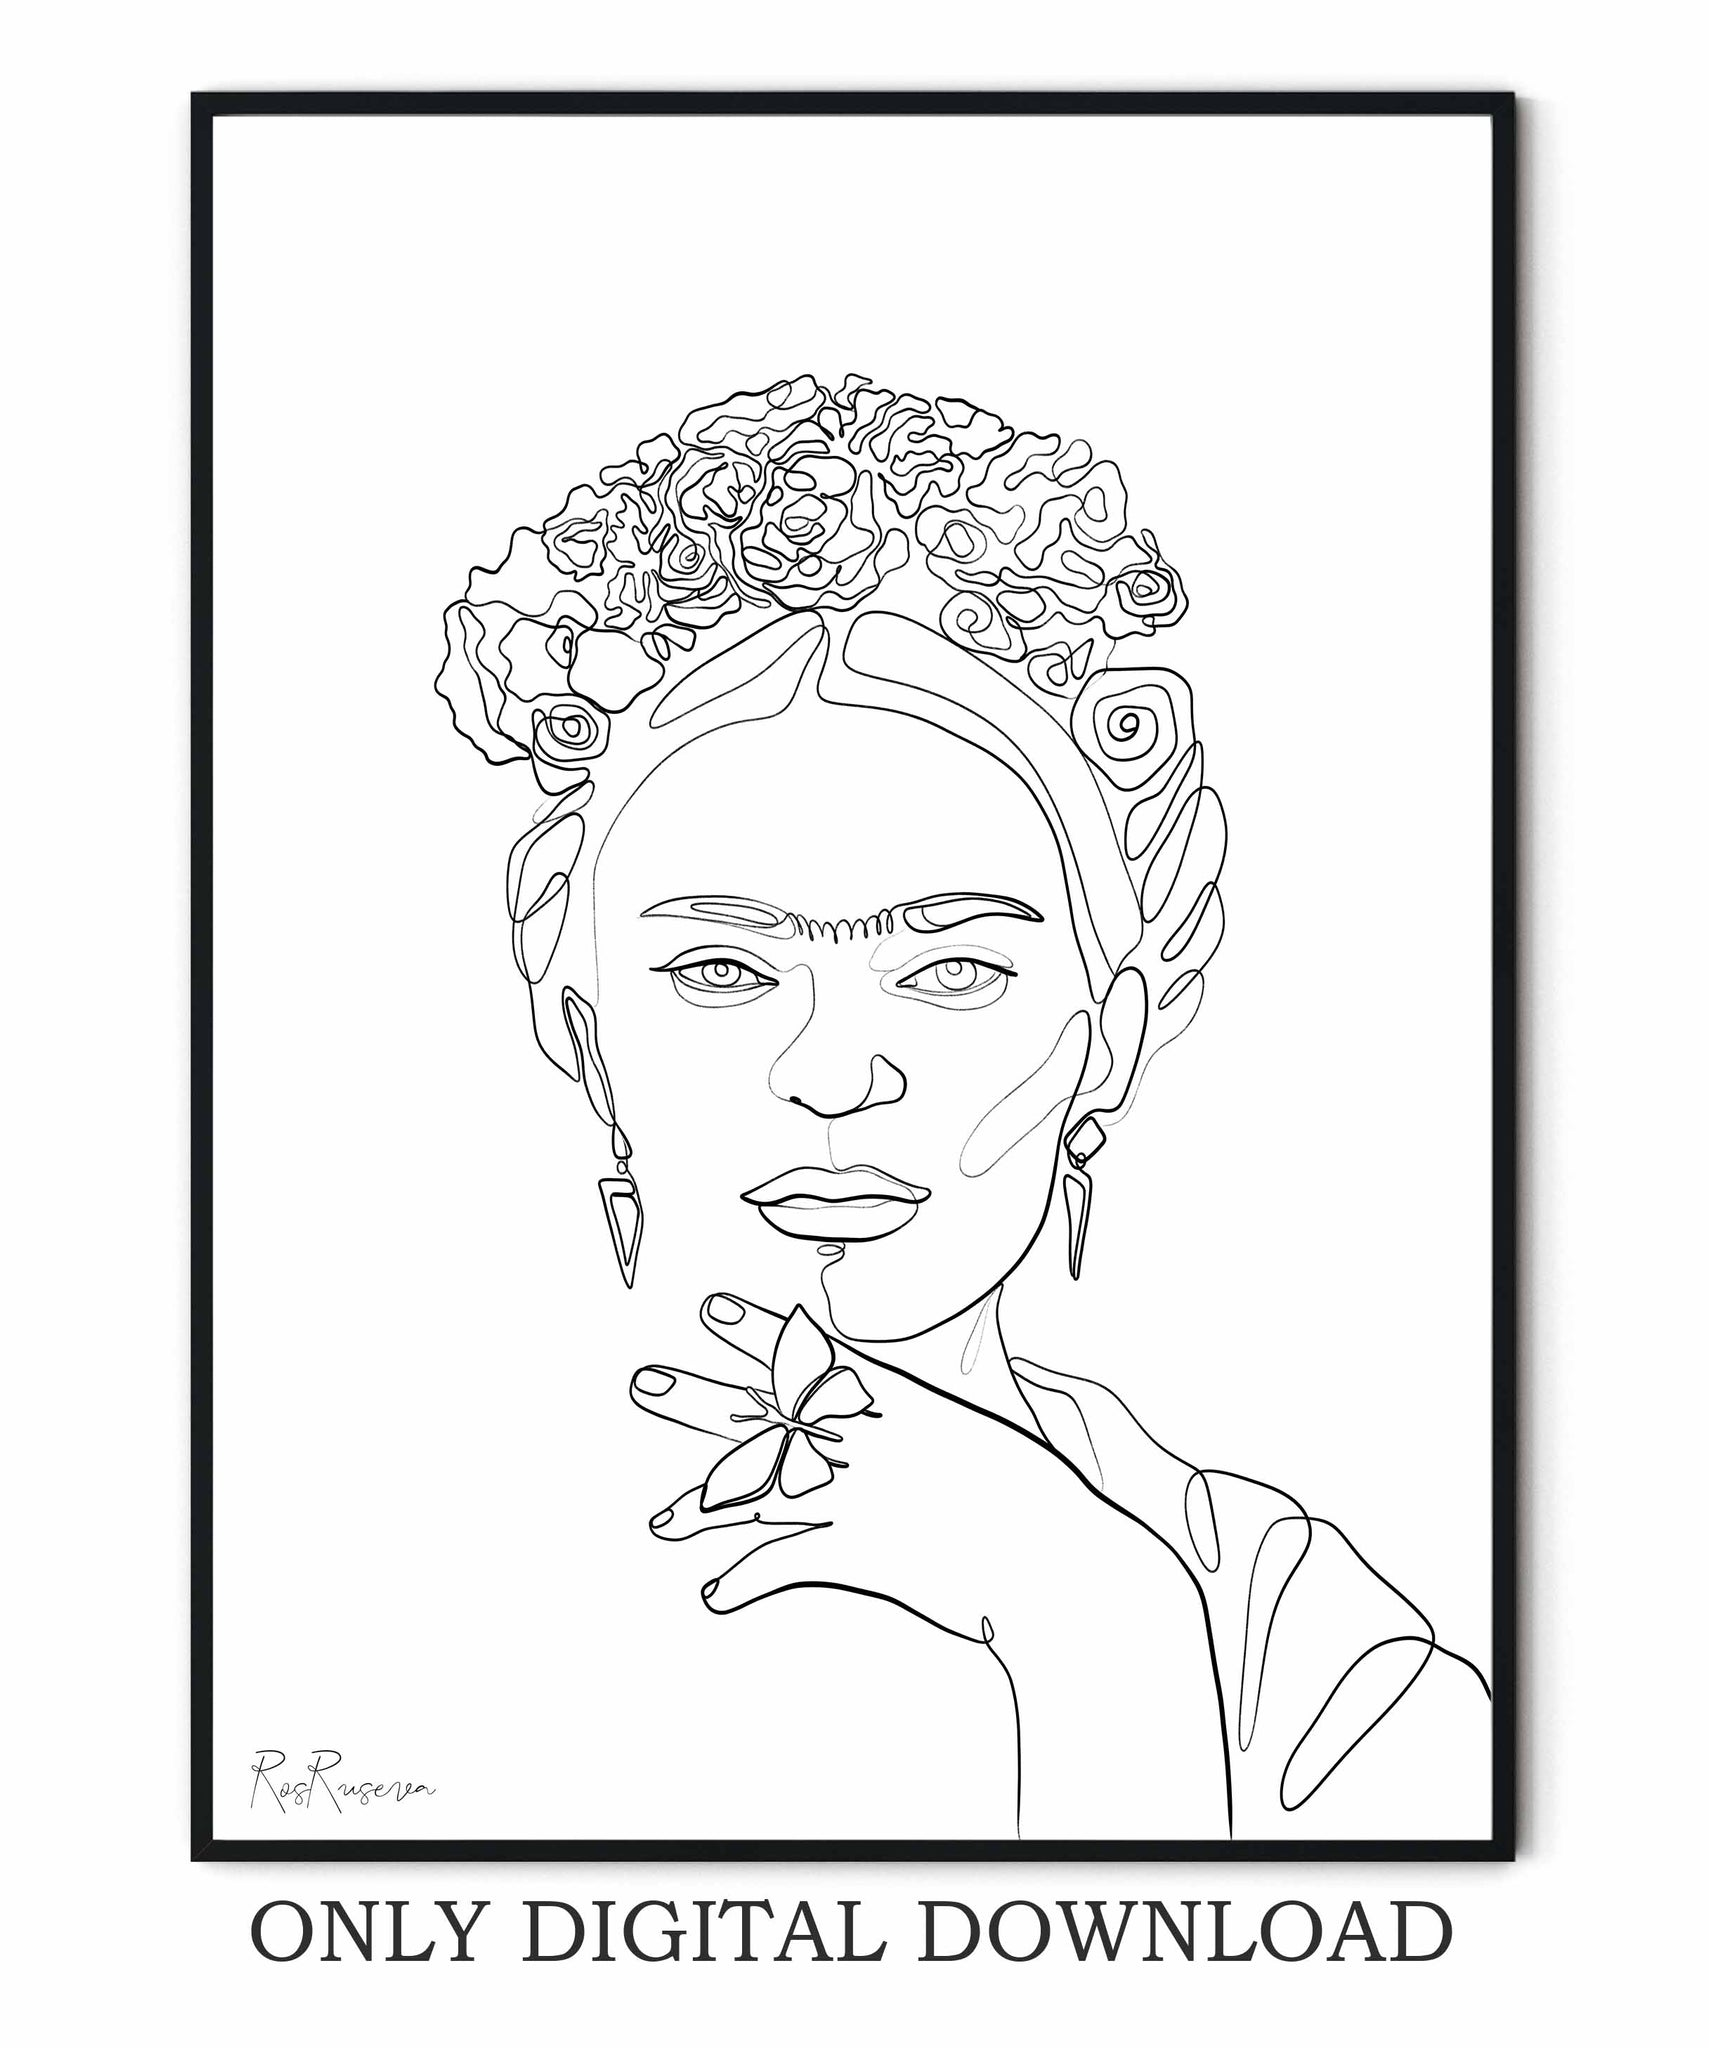 Frida Kahlo One line drawing